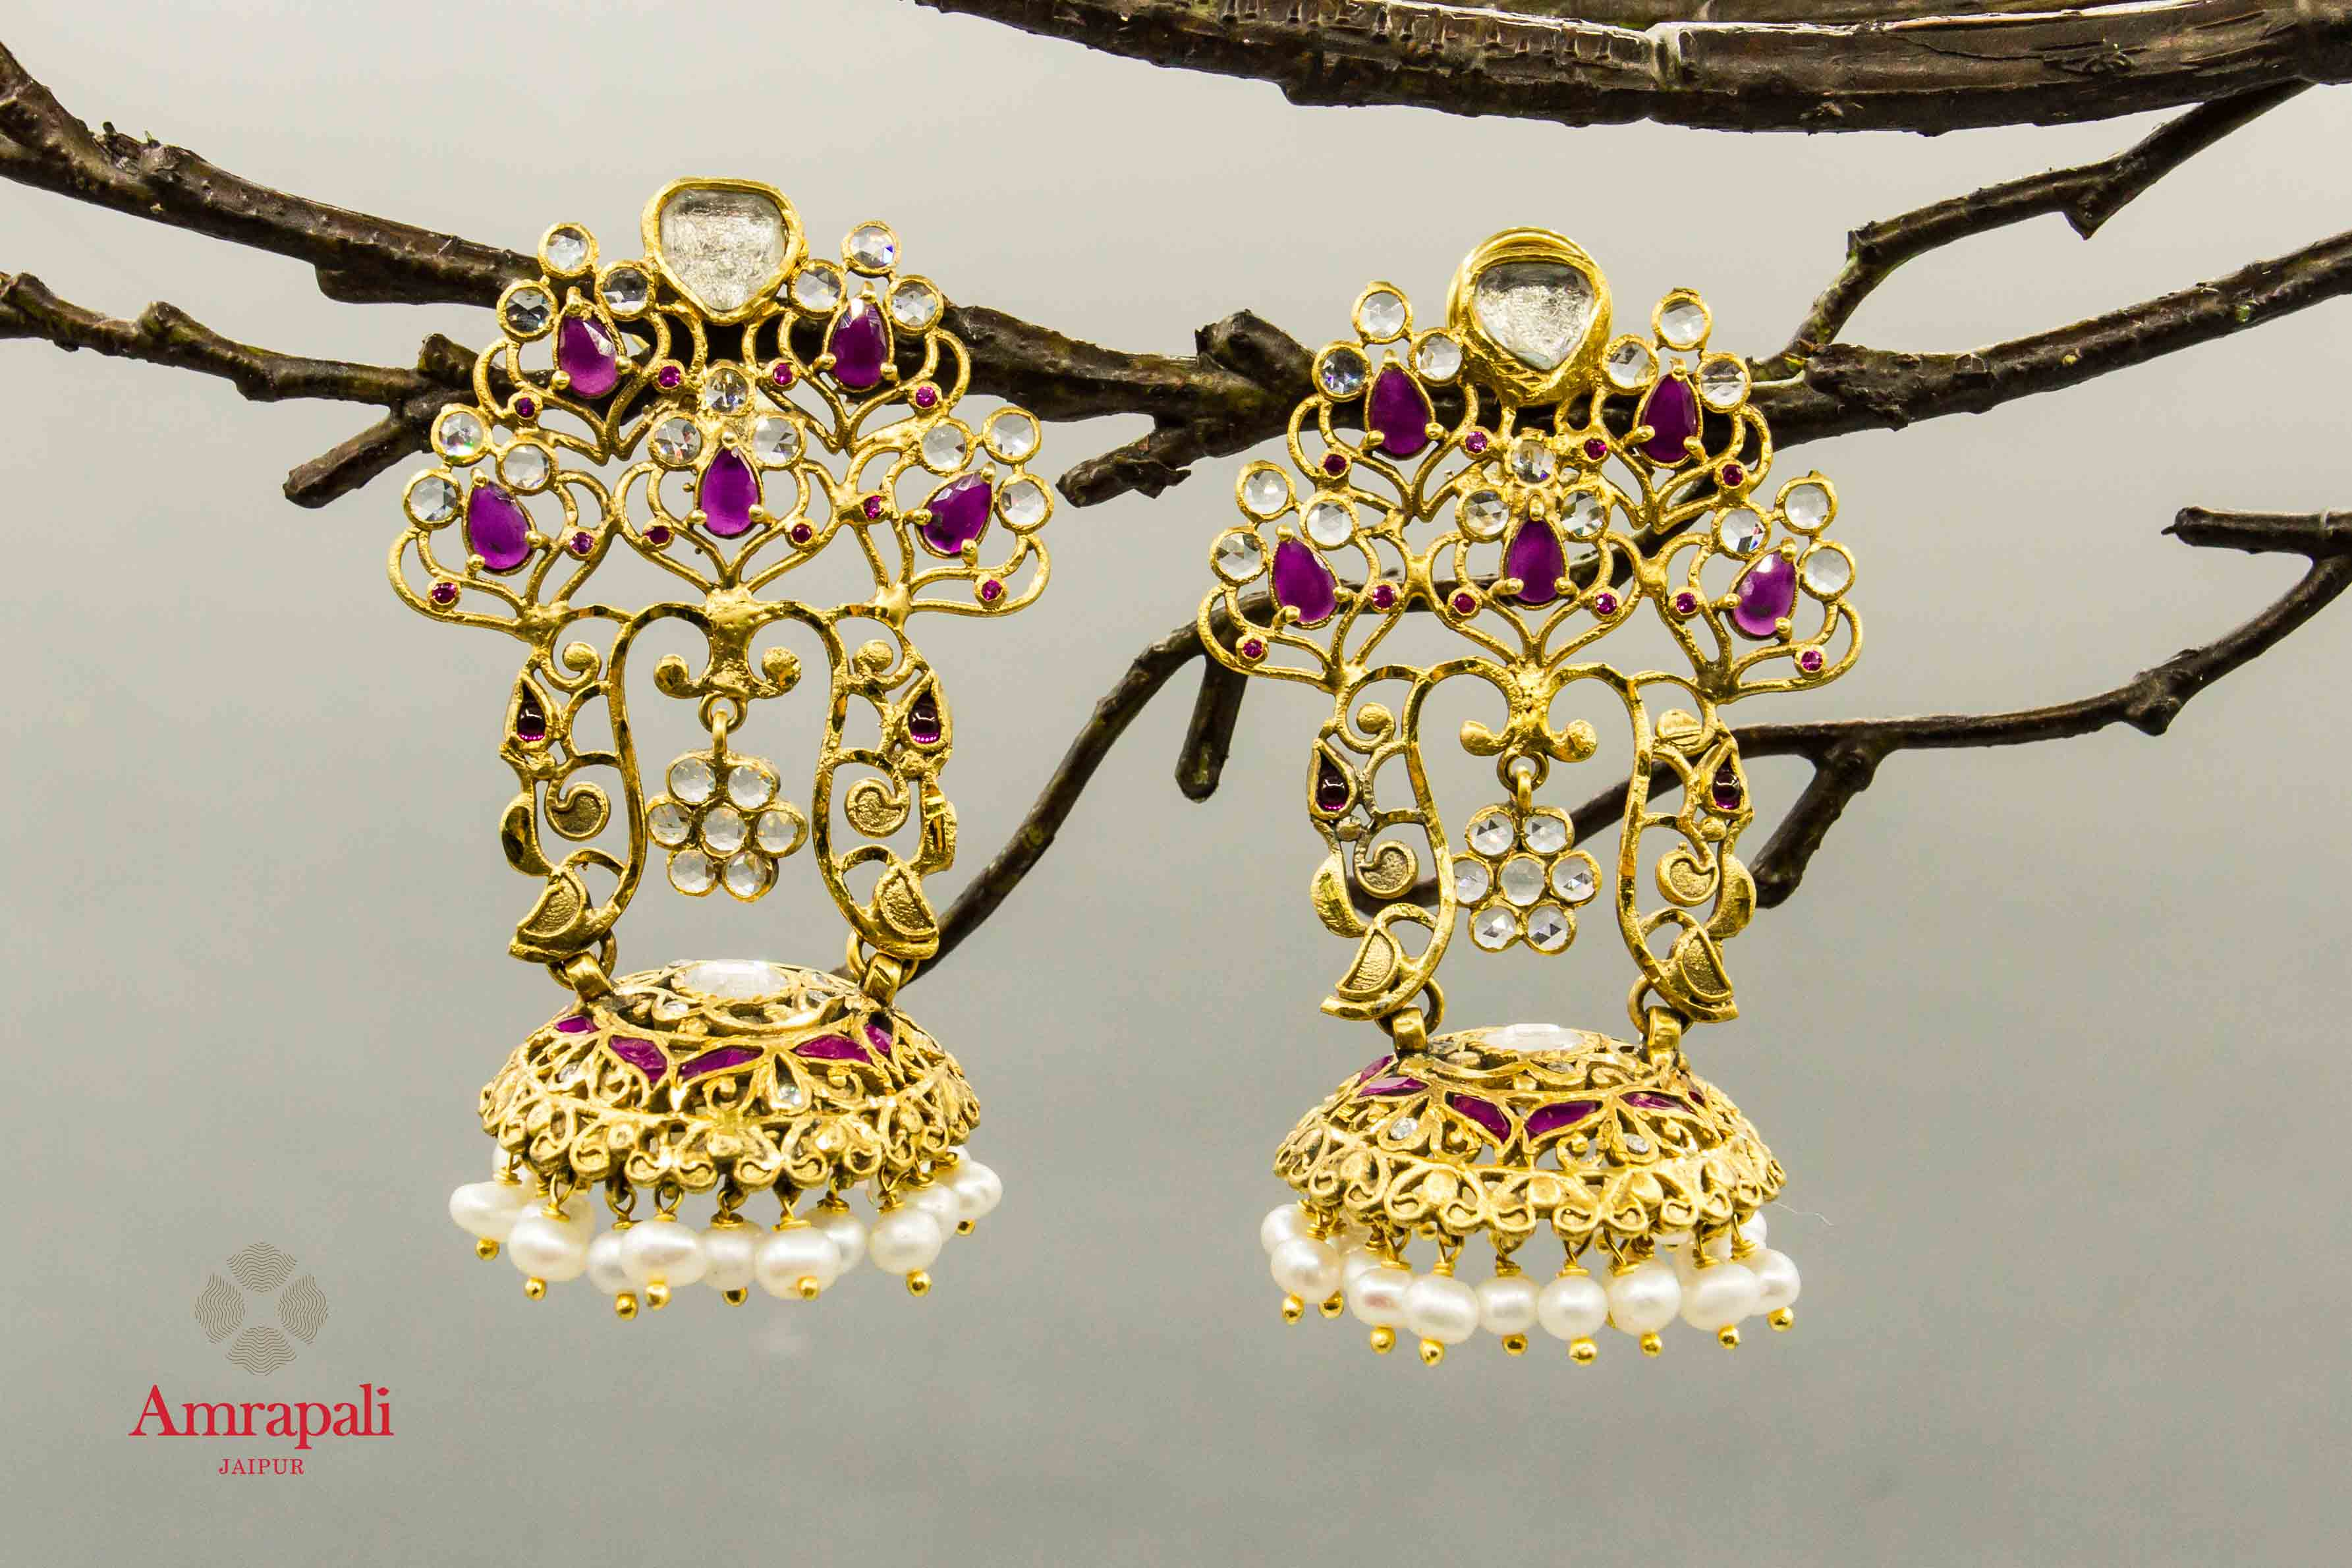 20C267 Silver Gold Plated Glass Pearl Filigree Earrings with Jhumki